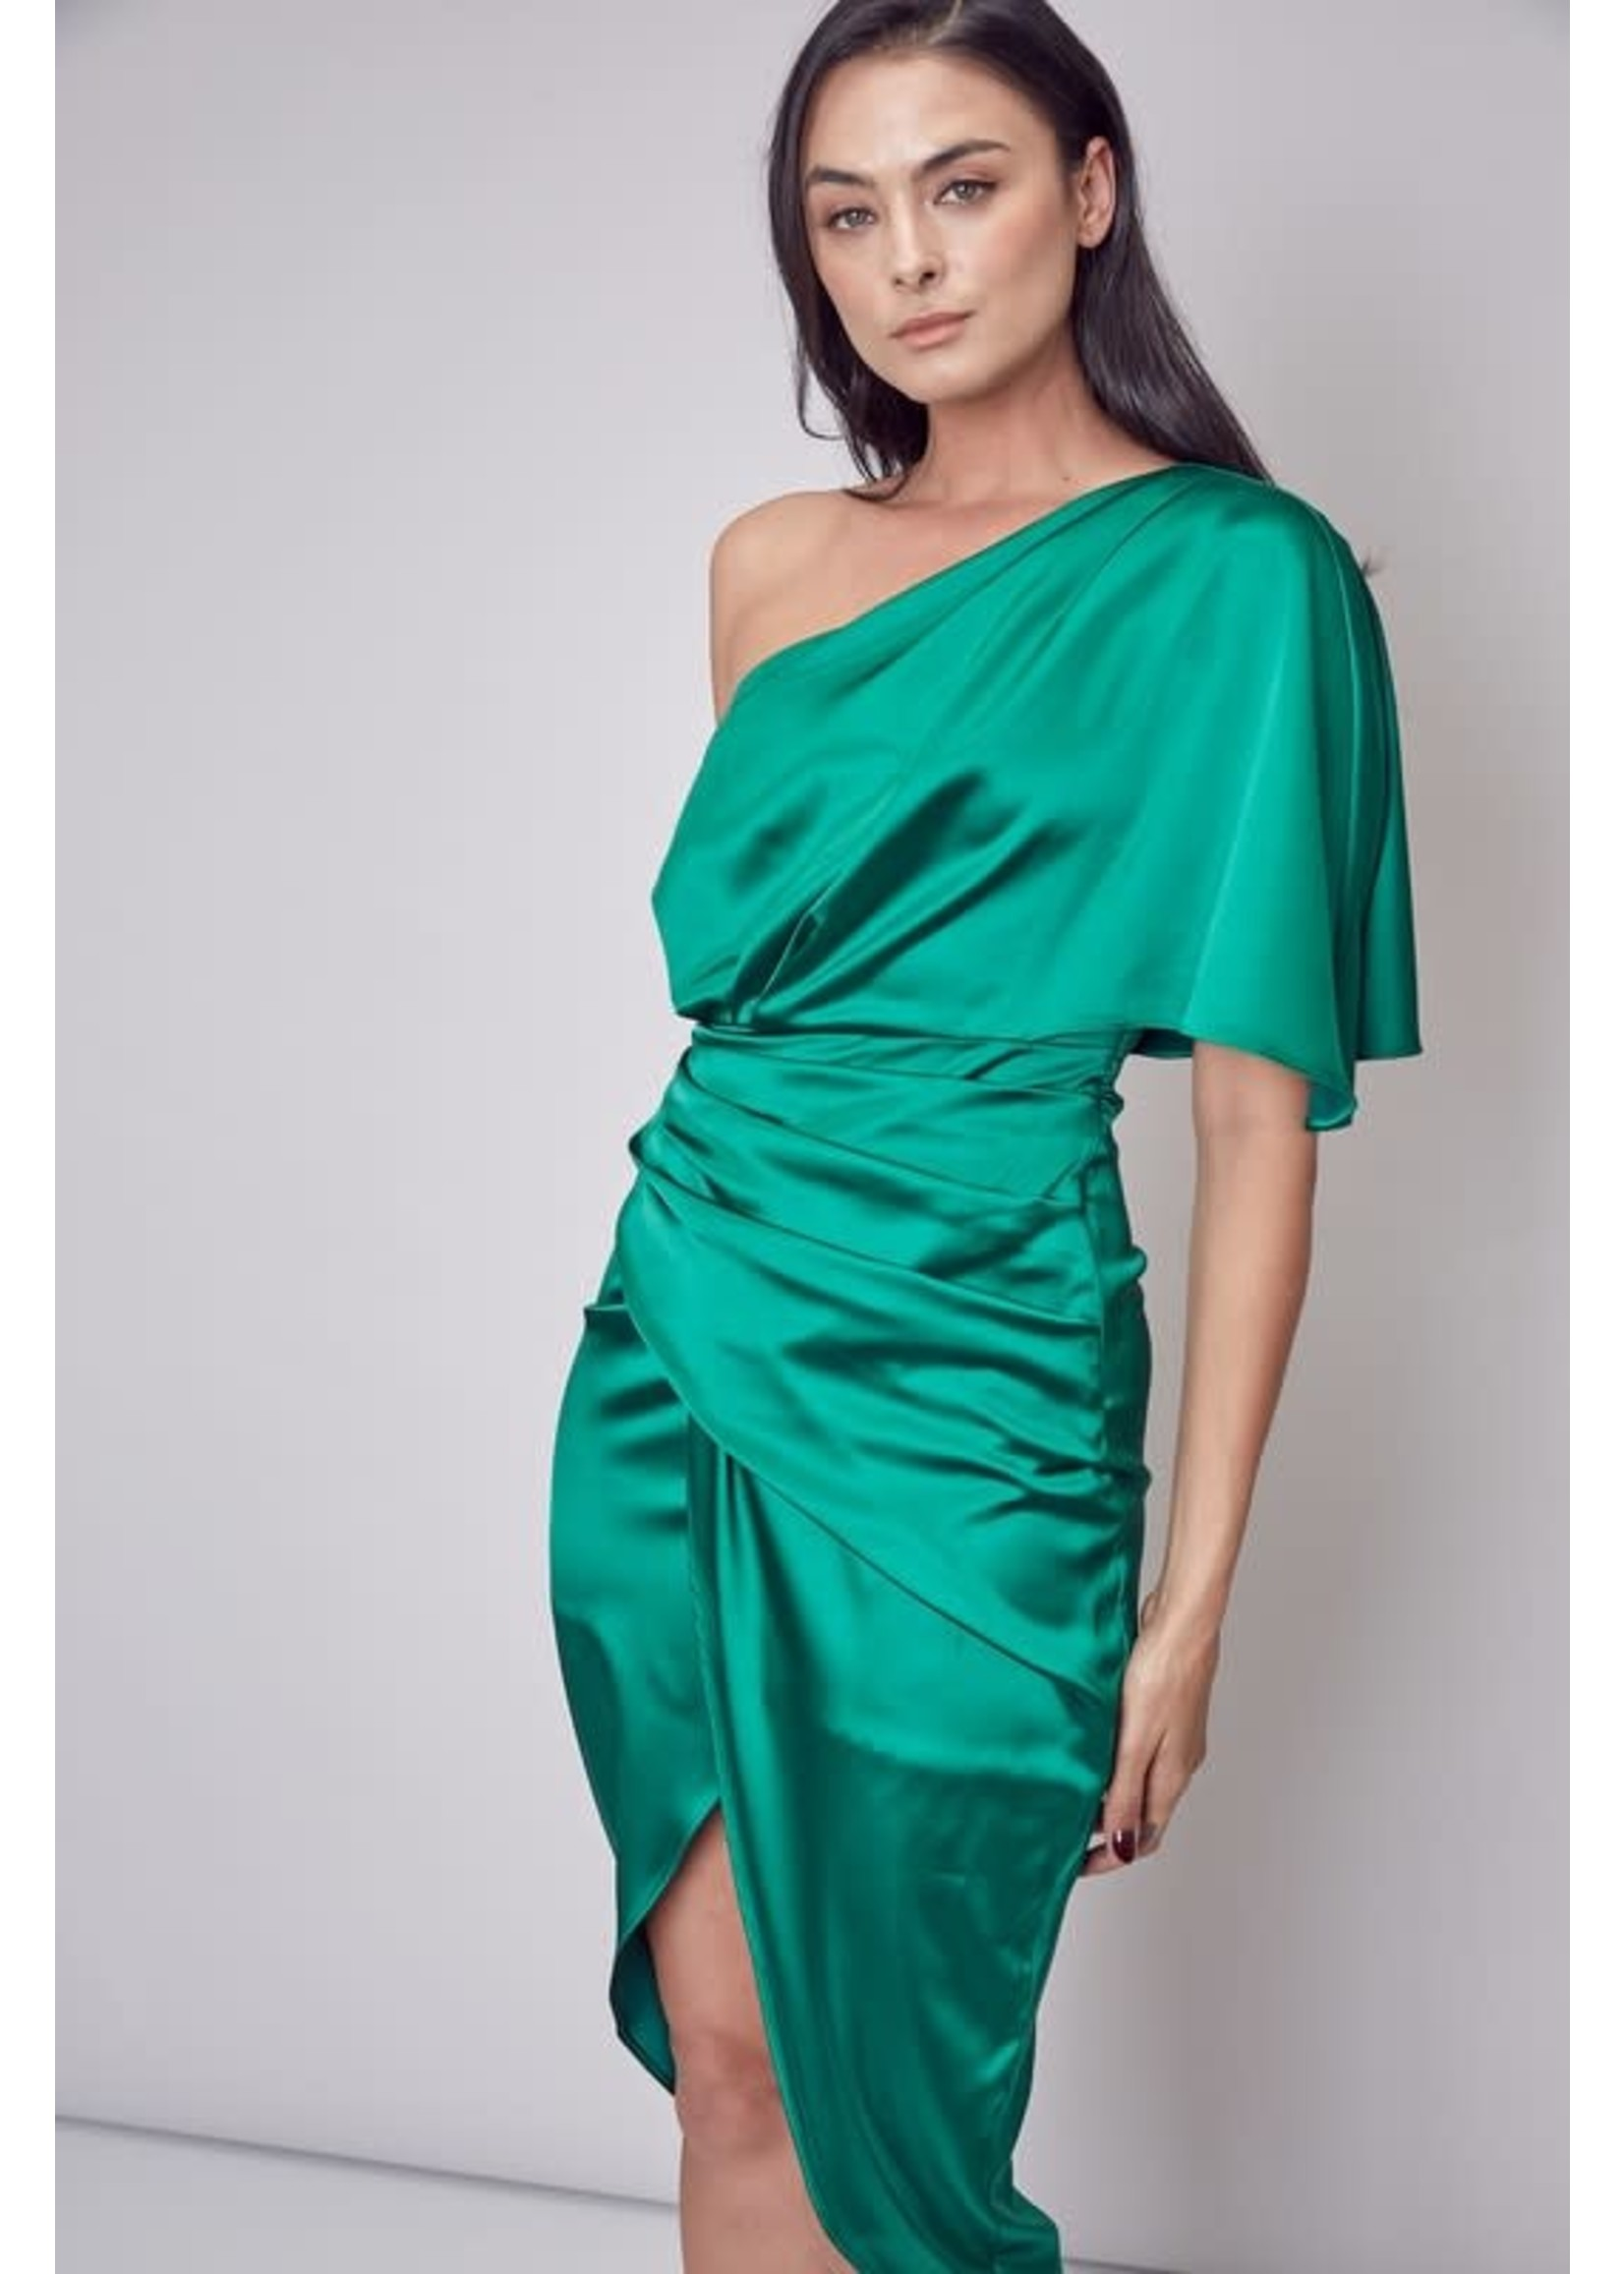 DO + BE One Shouldered Wrap Dress - GY0455